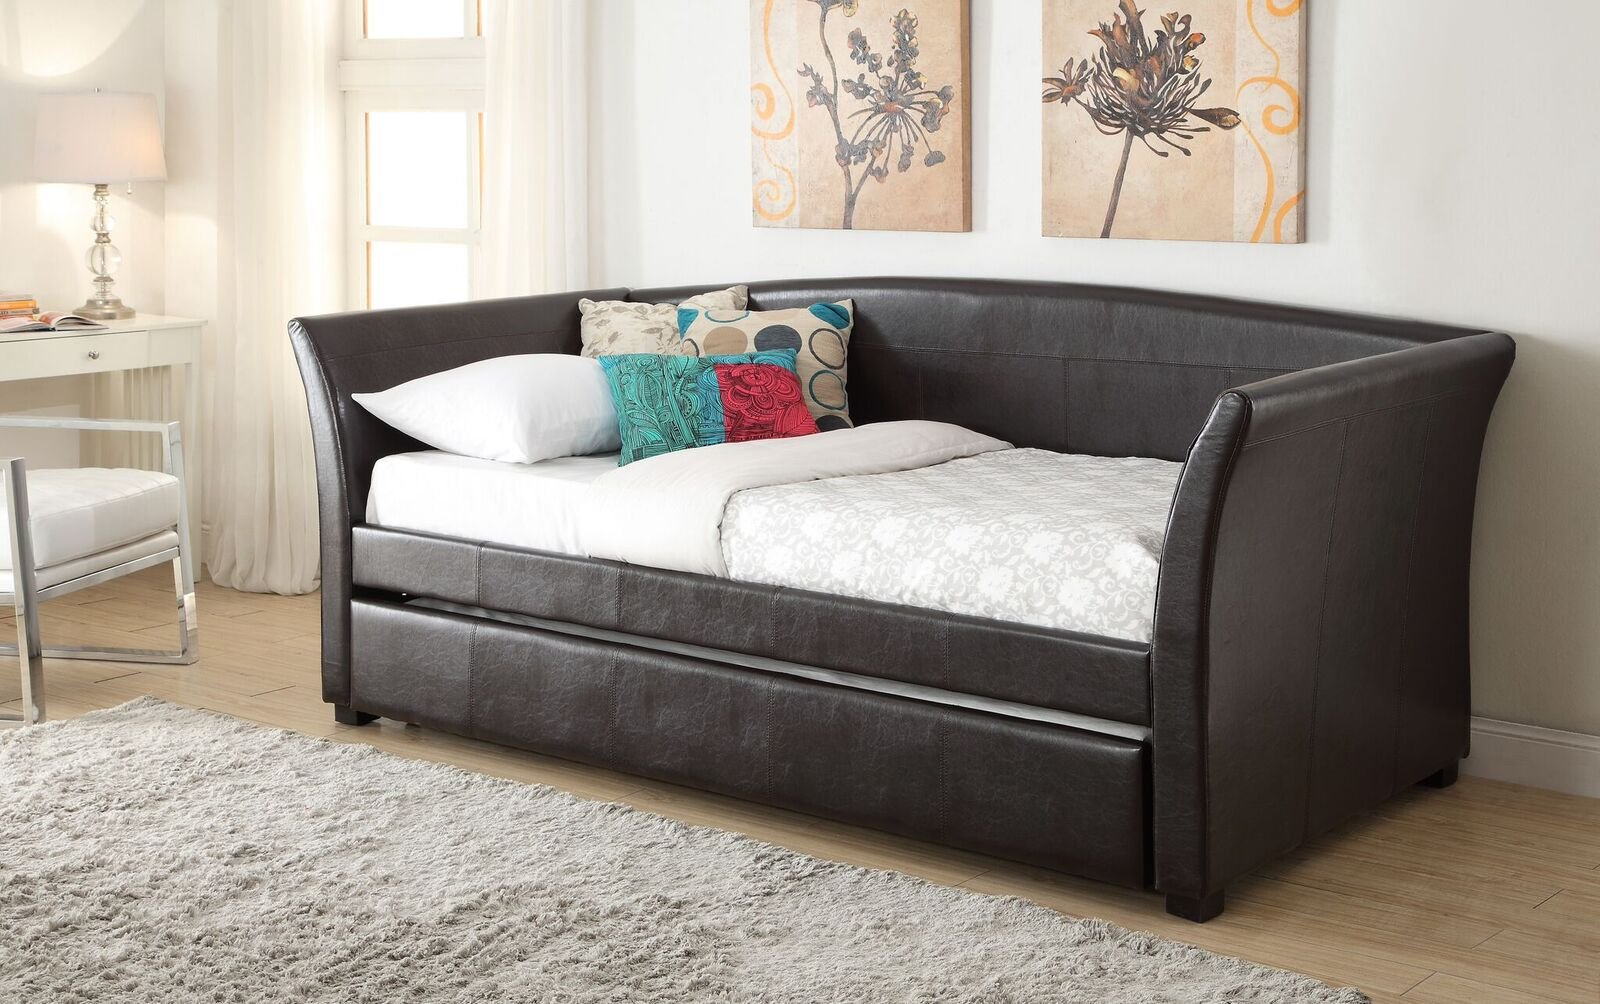 Cheap living room italian leather daybed find living room italian